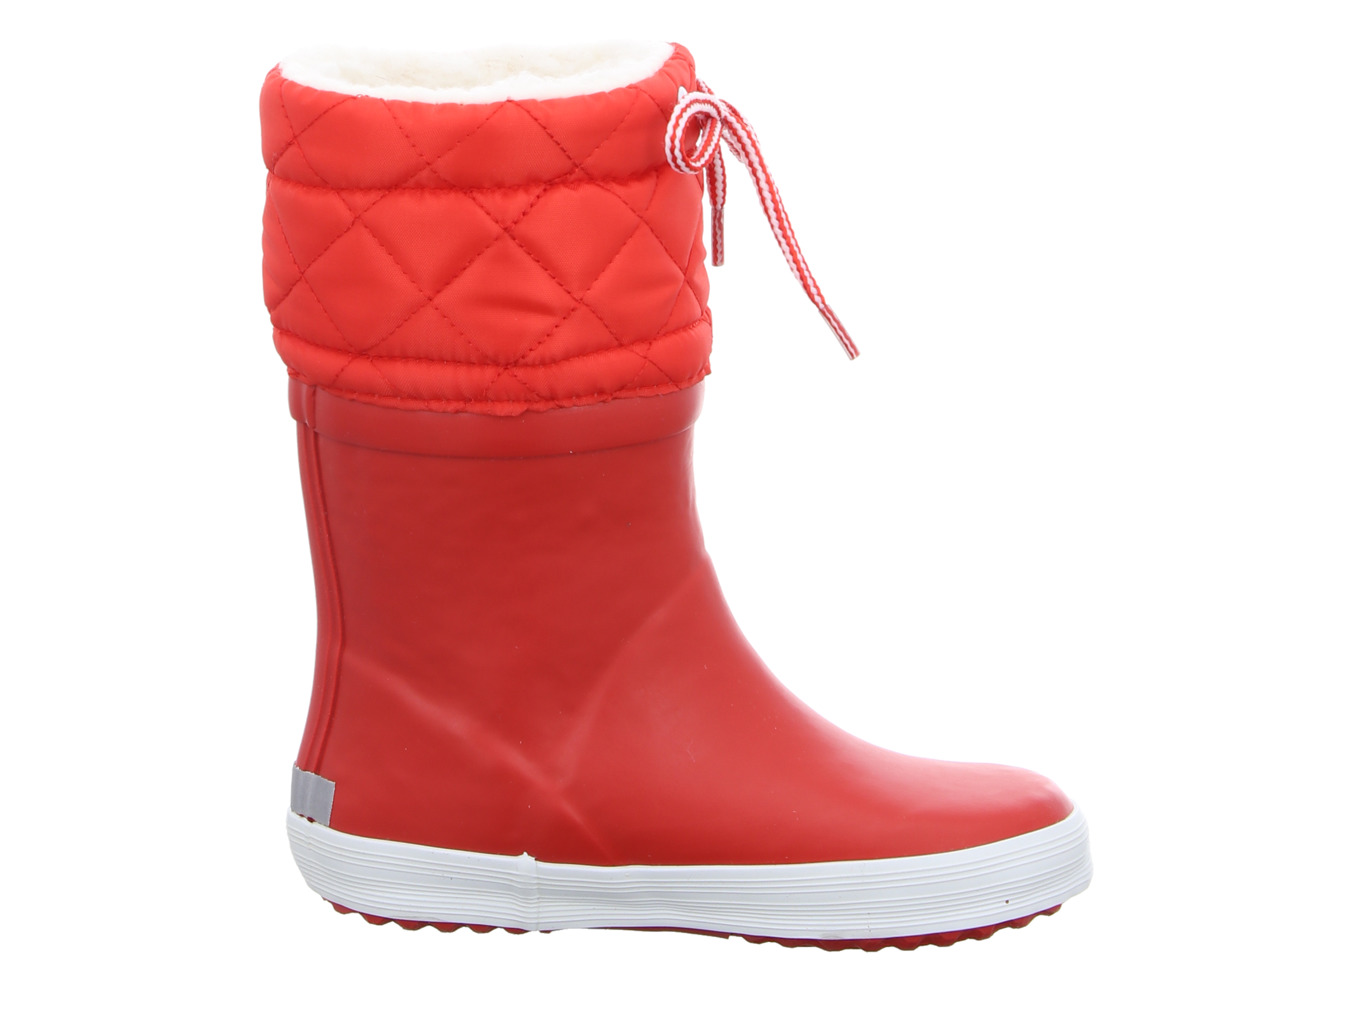 aigle_giboulee_rot_24538_rouge_4123